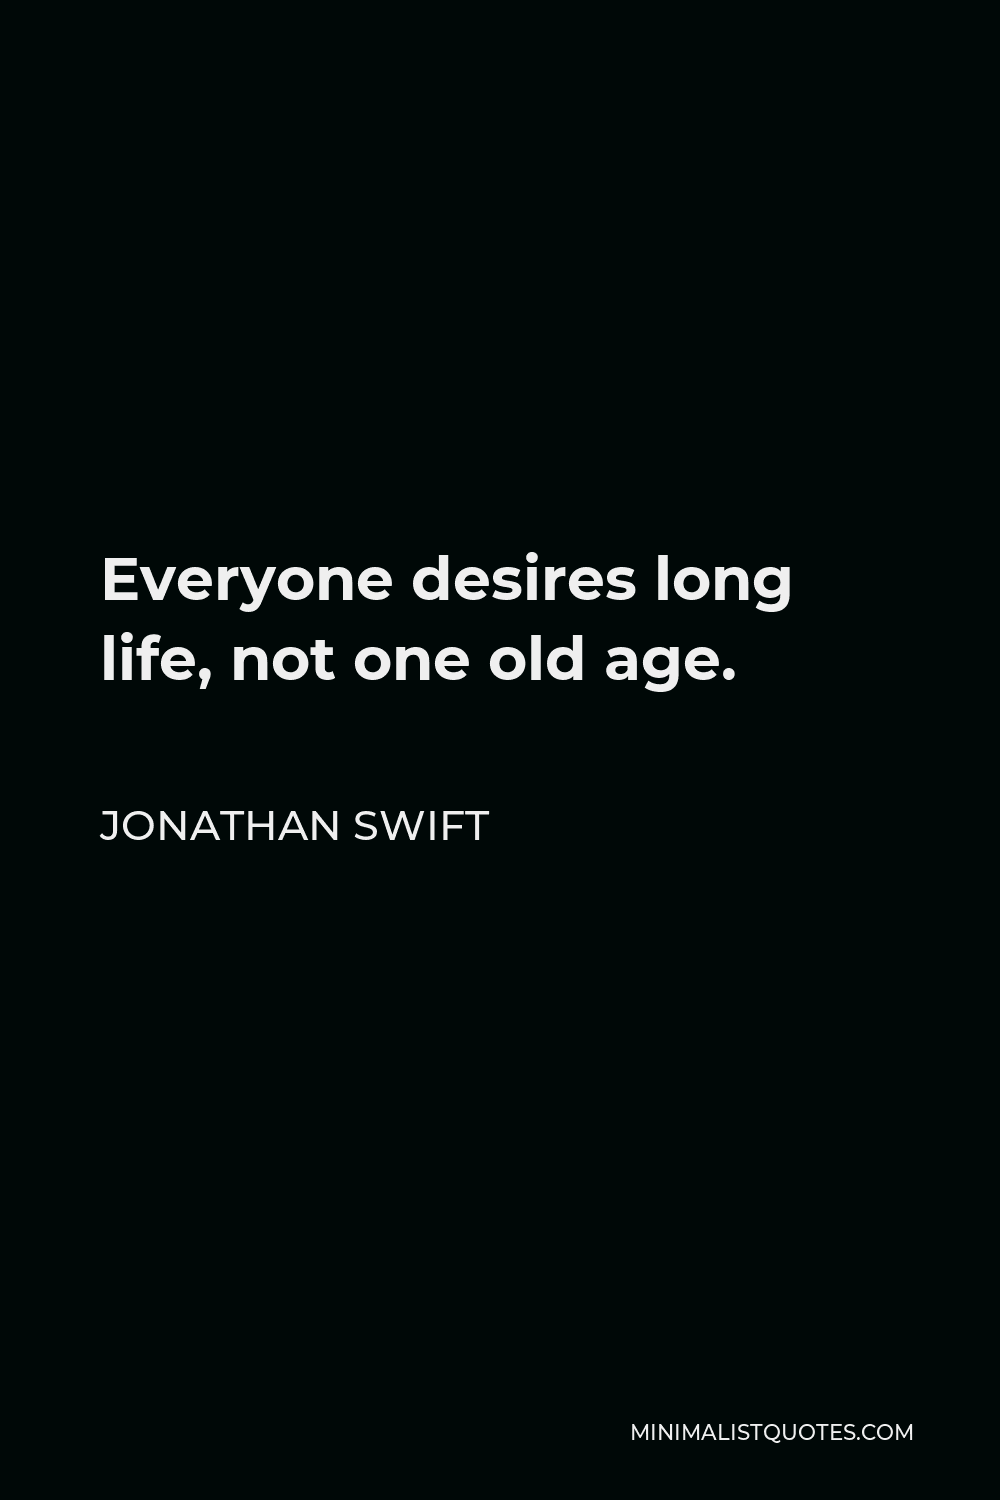 Jonathan Swift Quote - Everyone desires long life, not one old age.